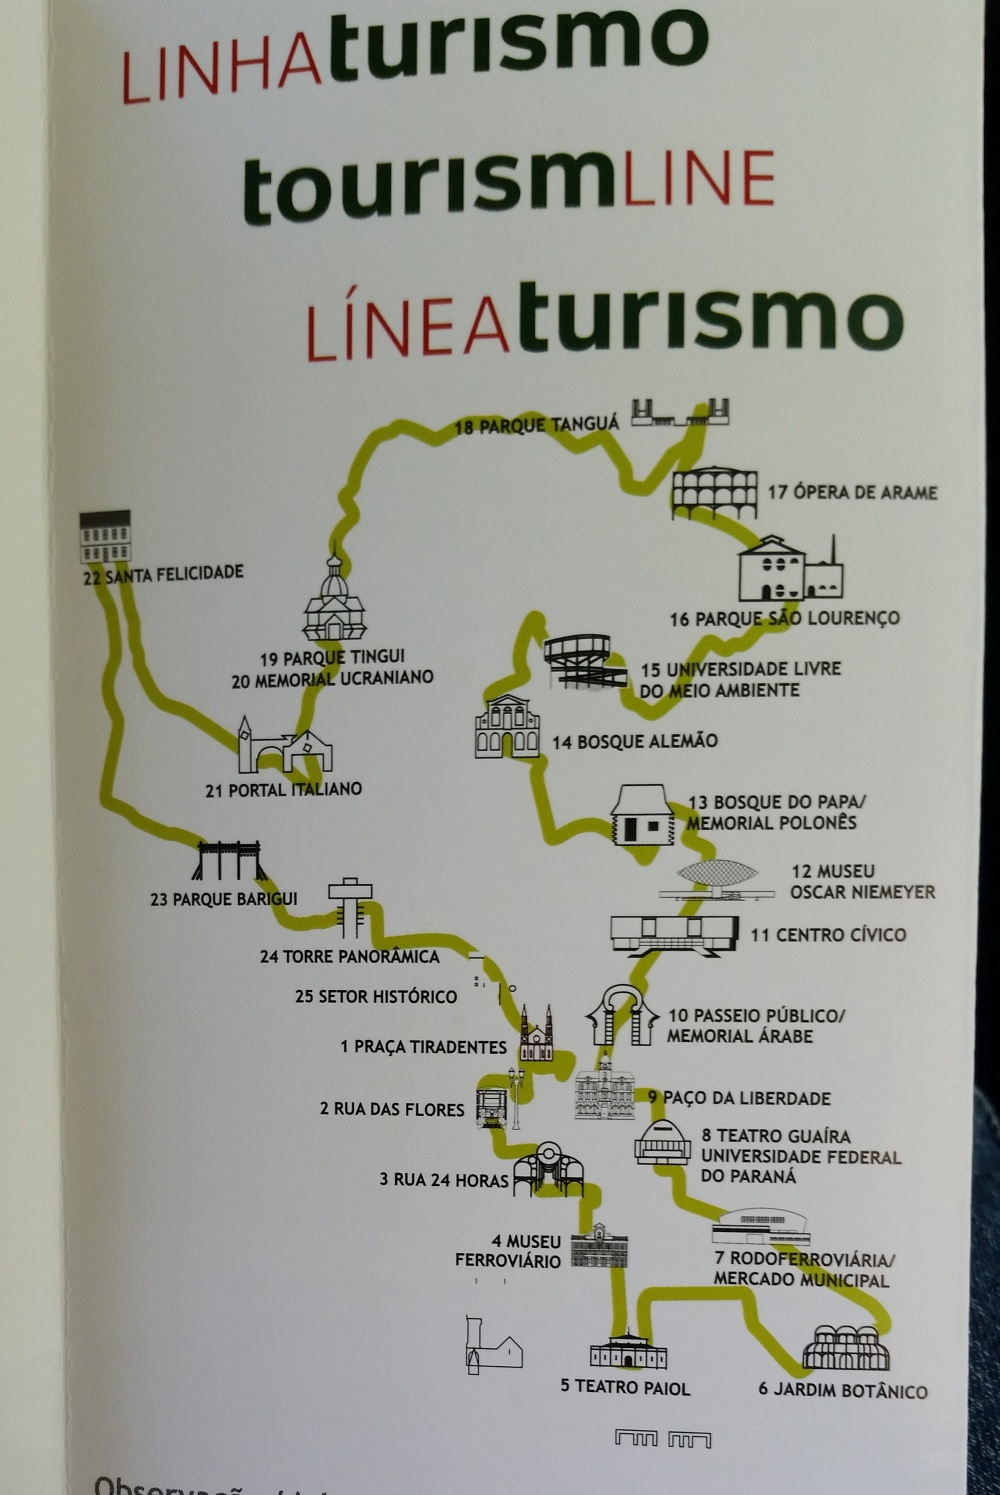 Map of the tourism bus line